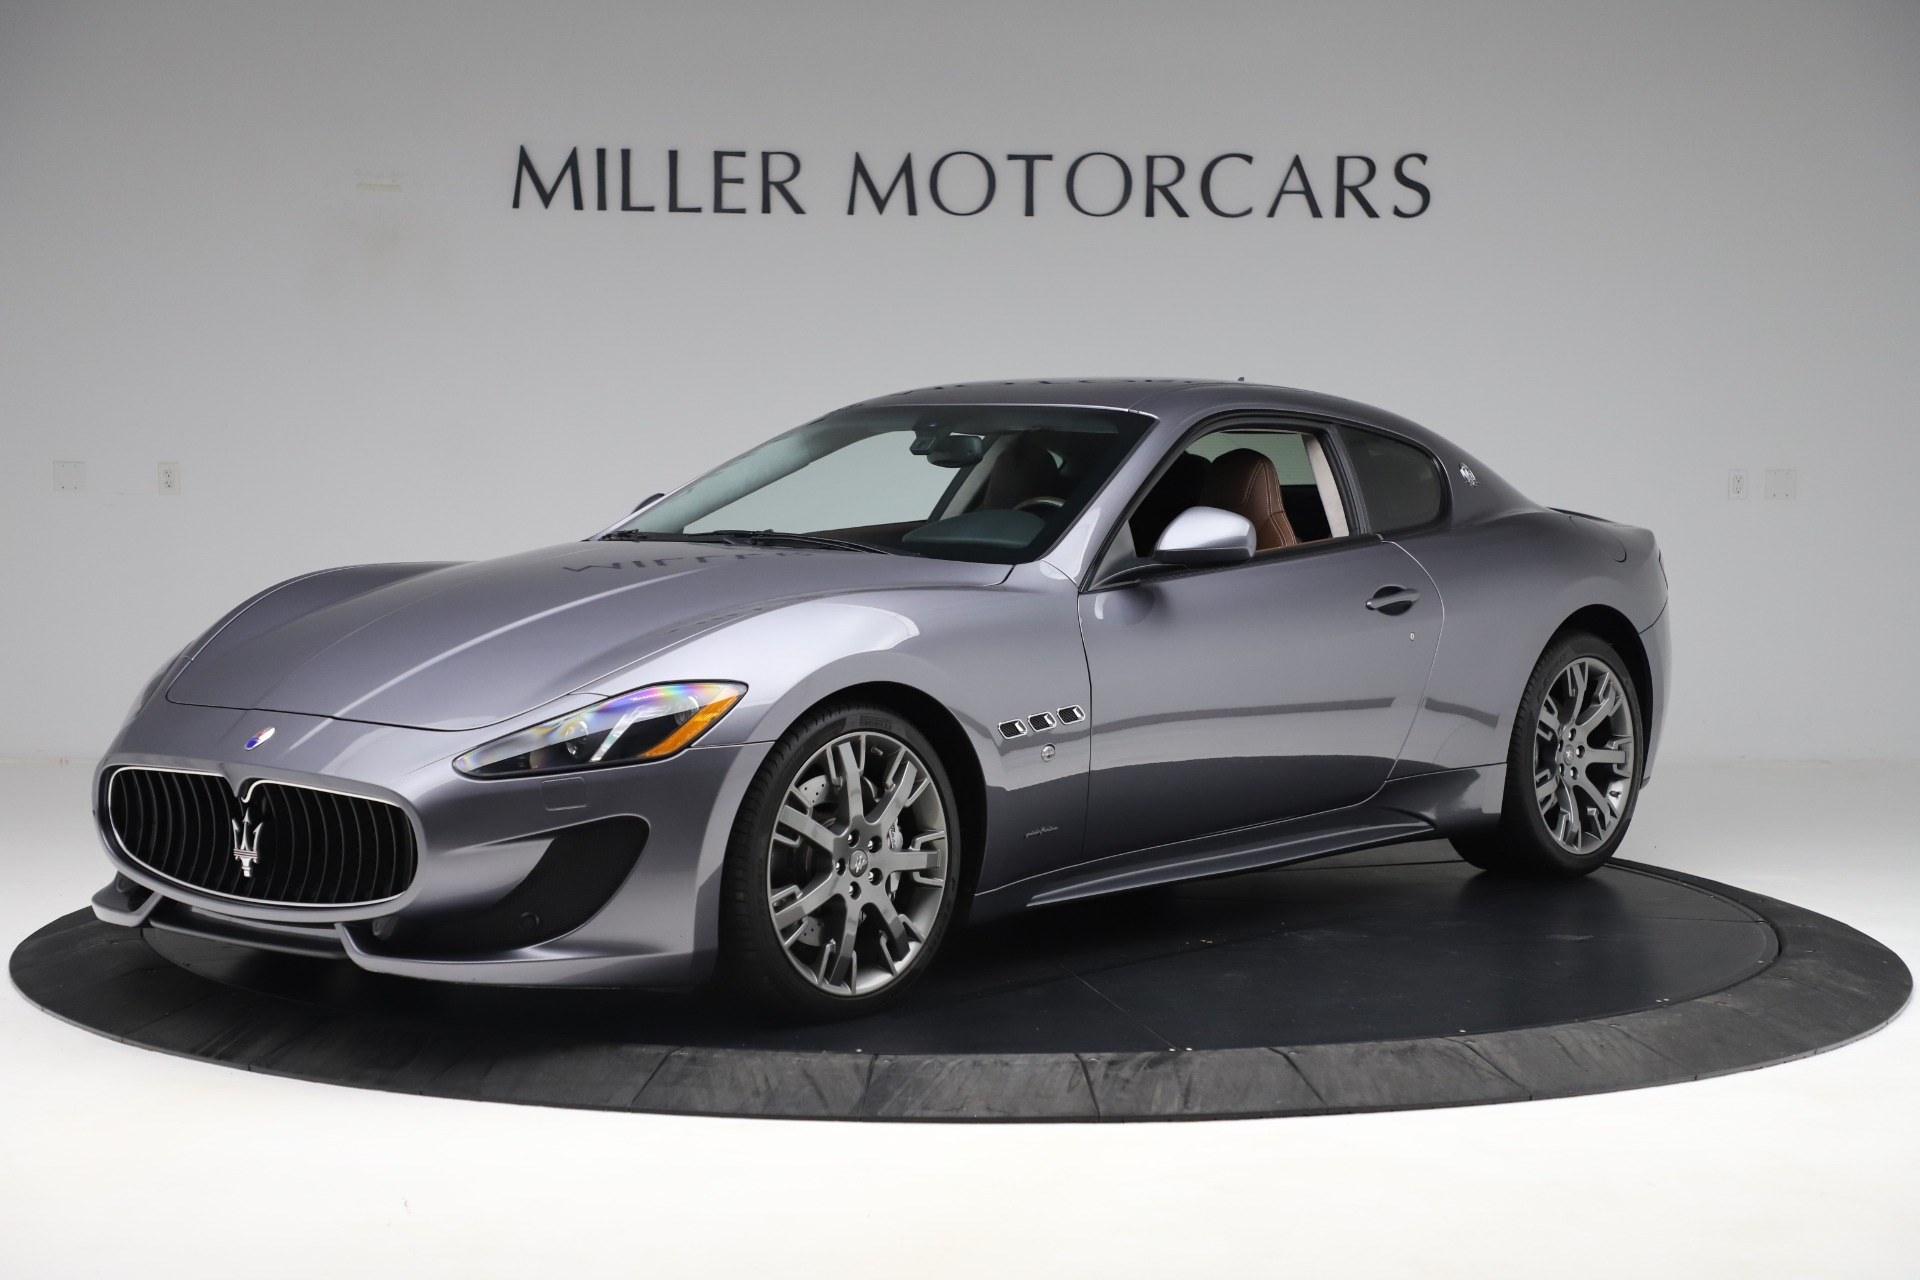 New 2016 Maserati GranTurismo Sport- TEST DRIVE SPECIAL For Sale In Greenwich, CT 166_p2